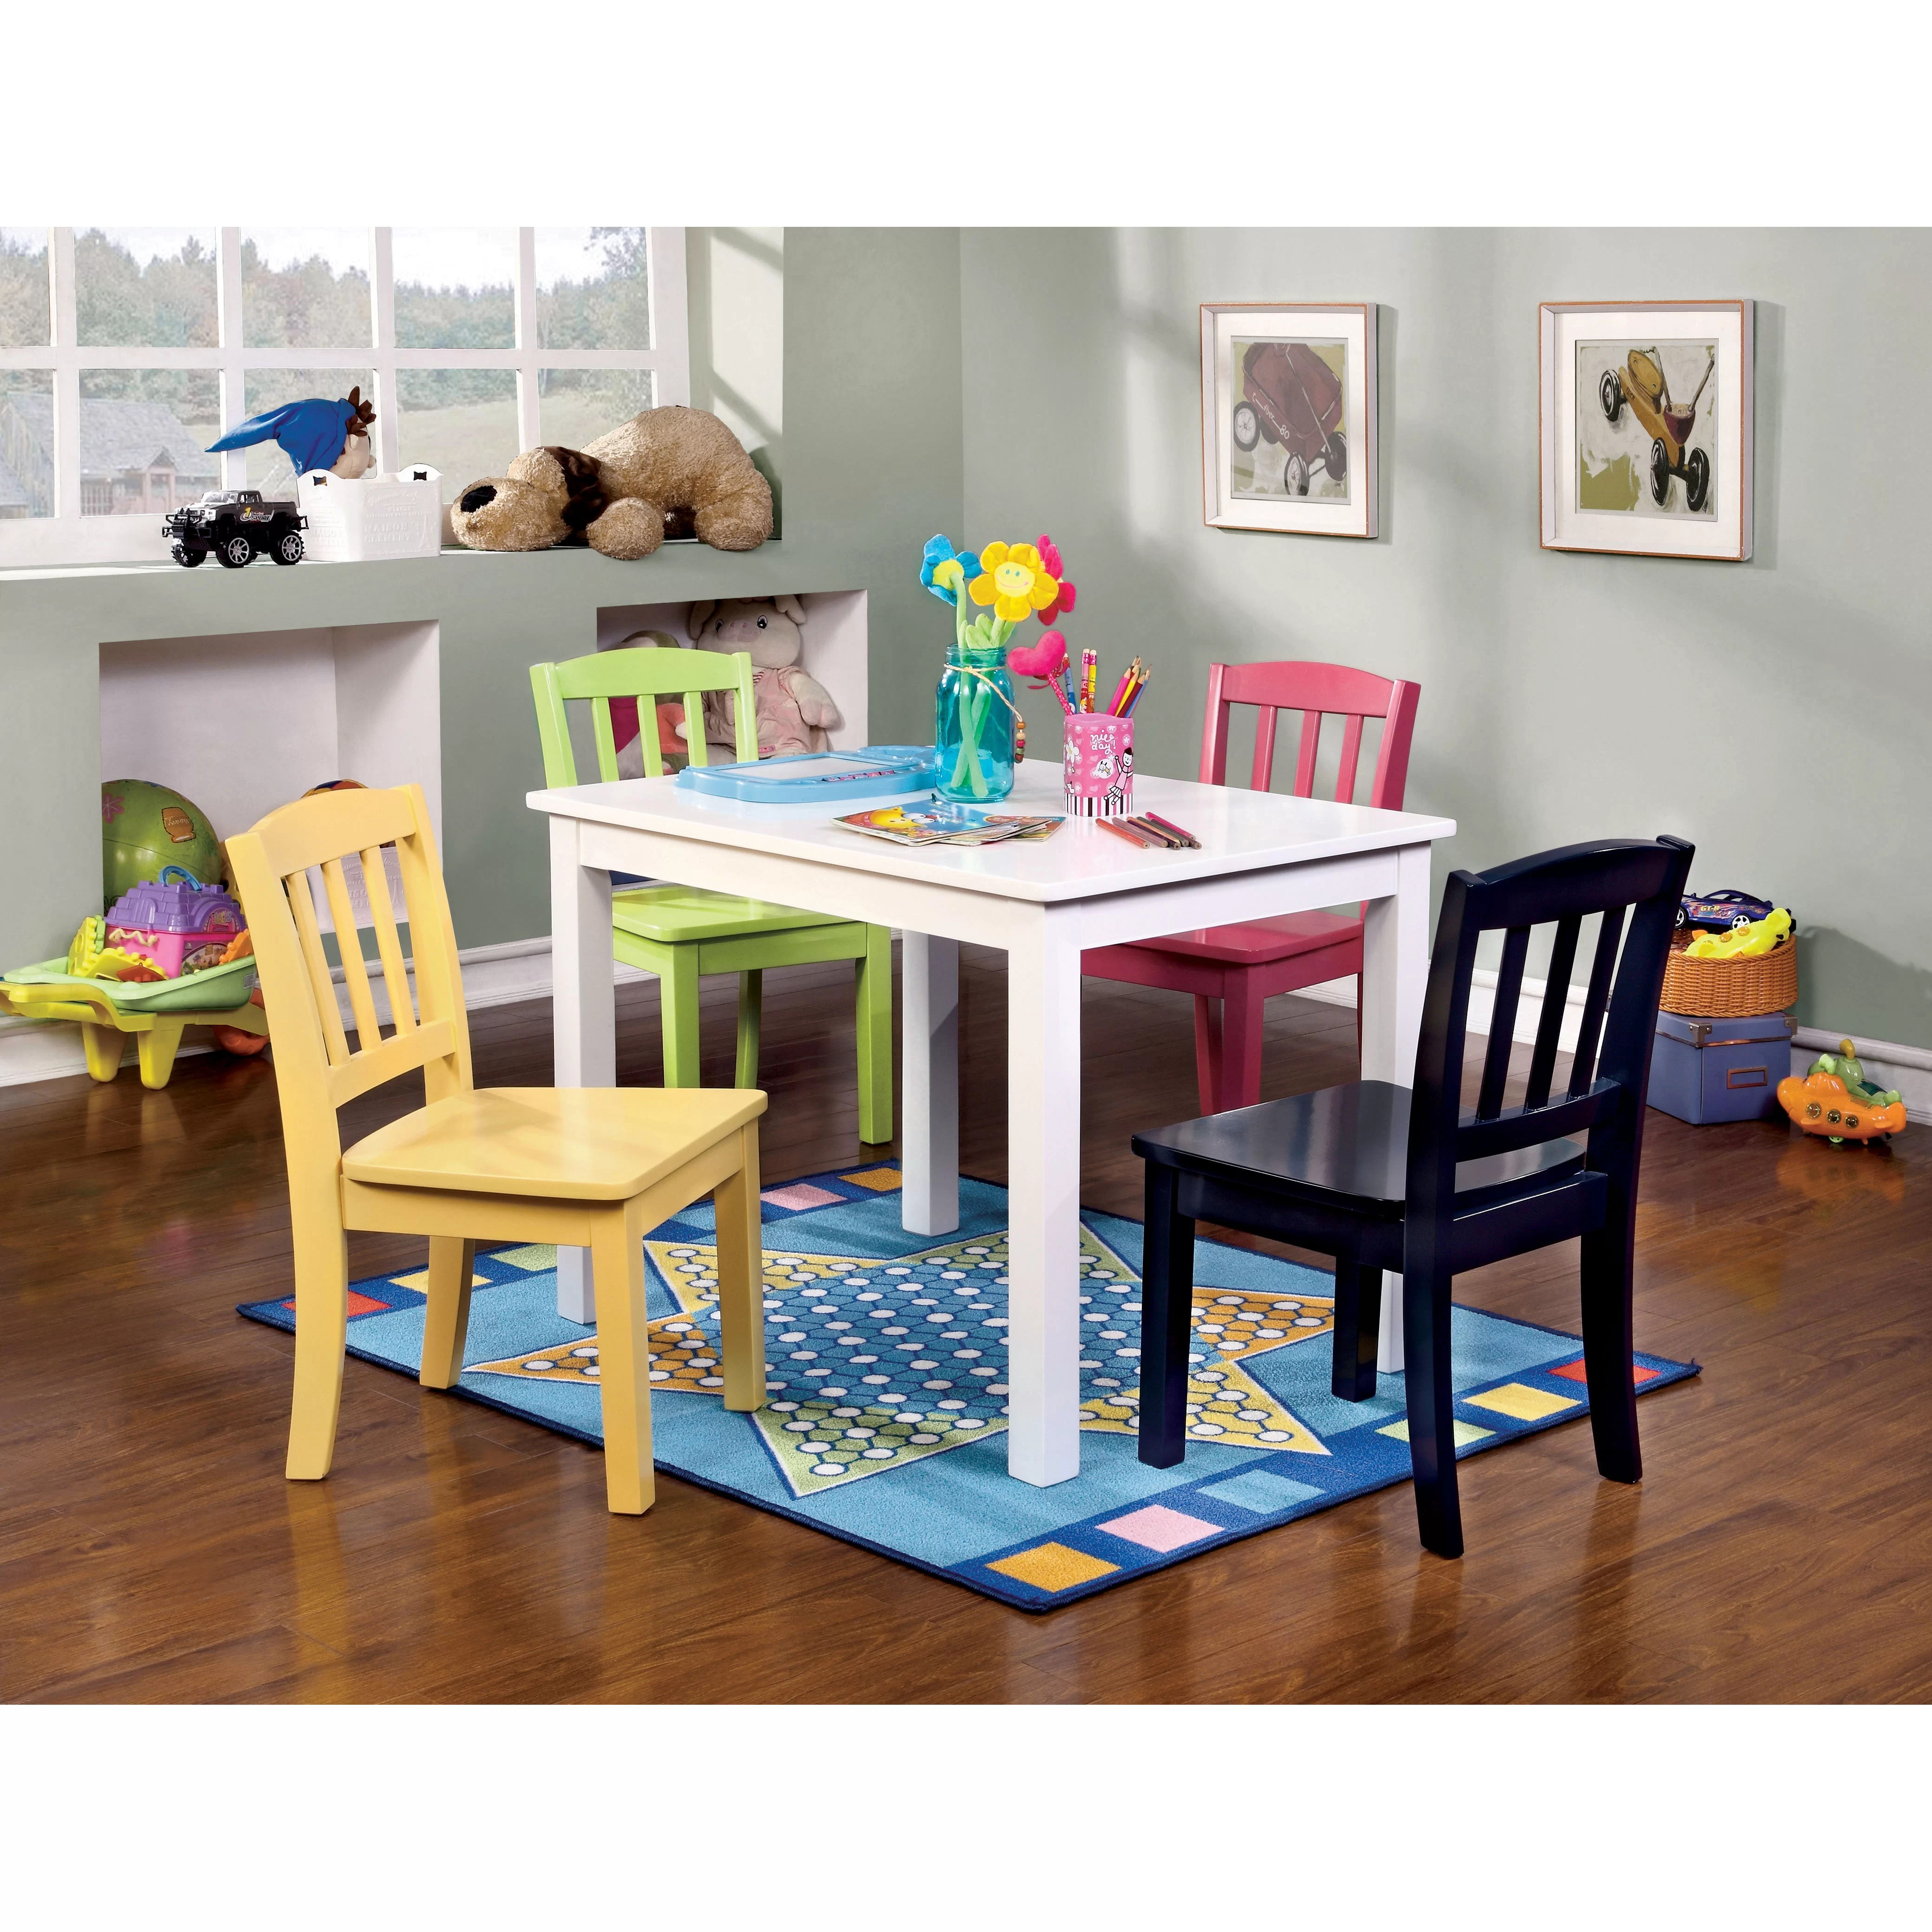 safety 1st 5 piece childrens table and chair set chiavari chairs rental viv 43 rae katie rectangle